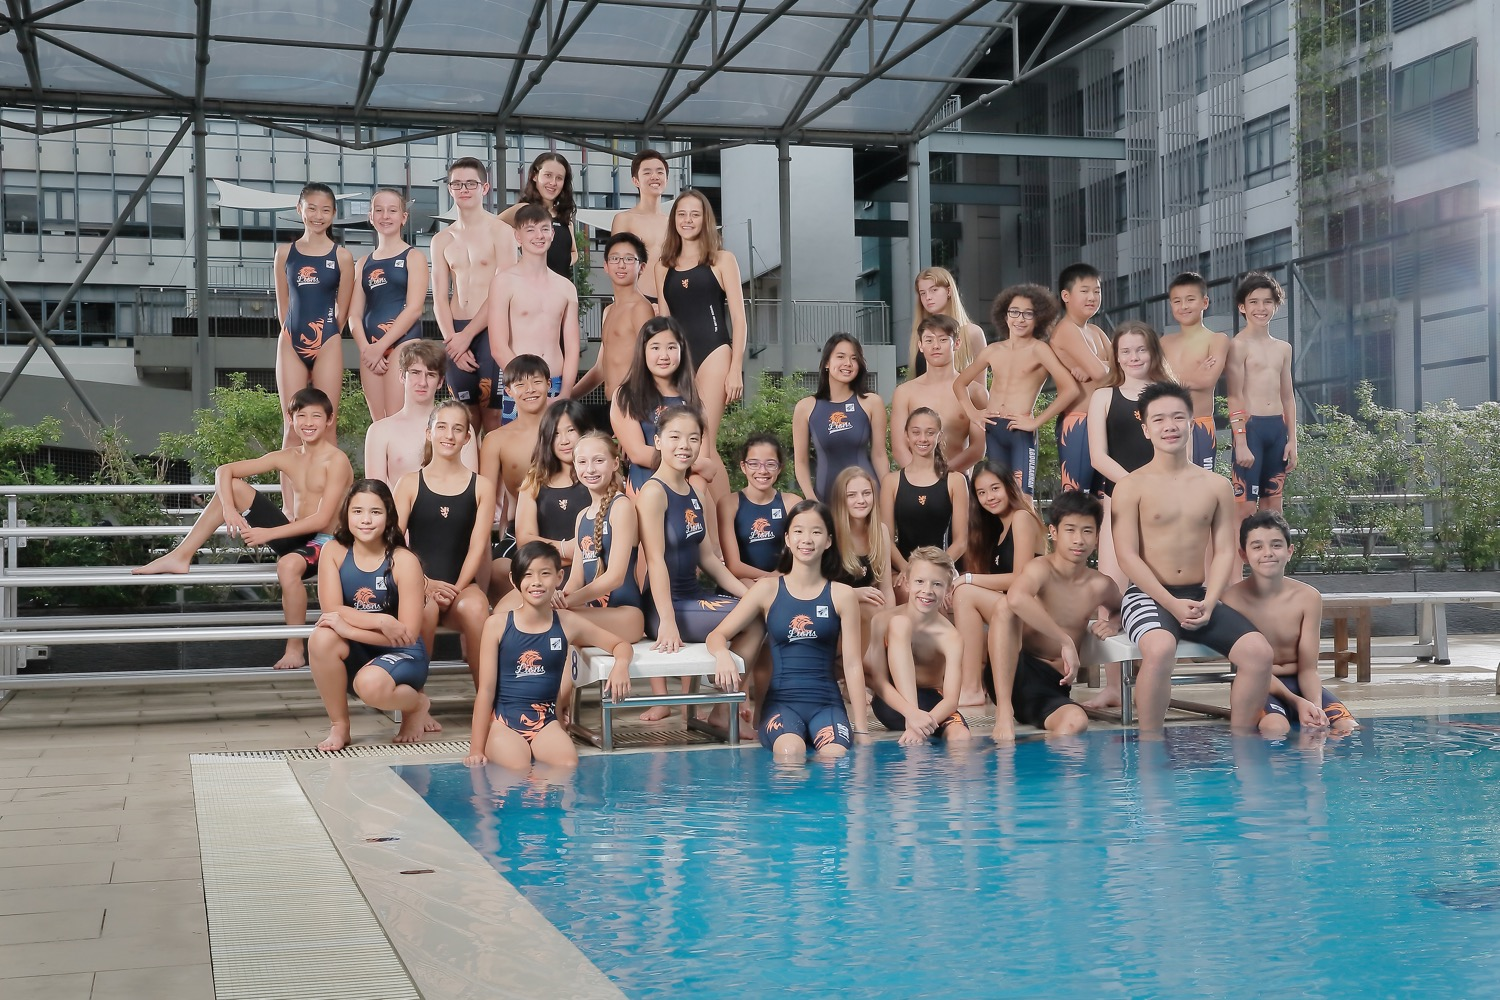 BSKL Sports Group Pose (Swim Team)